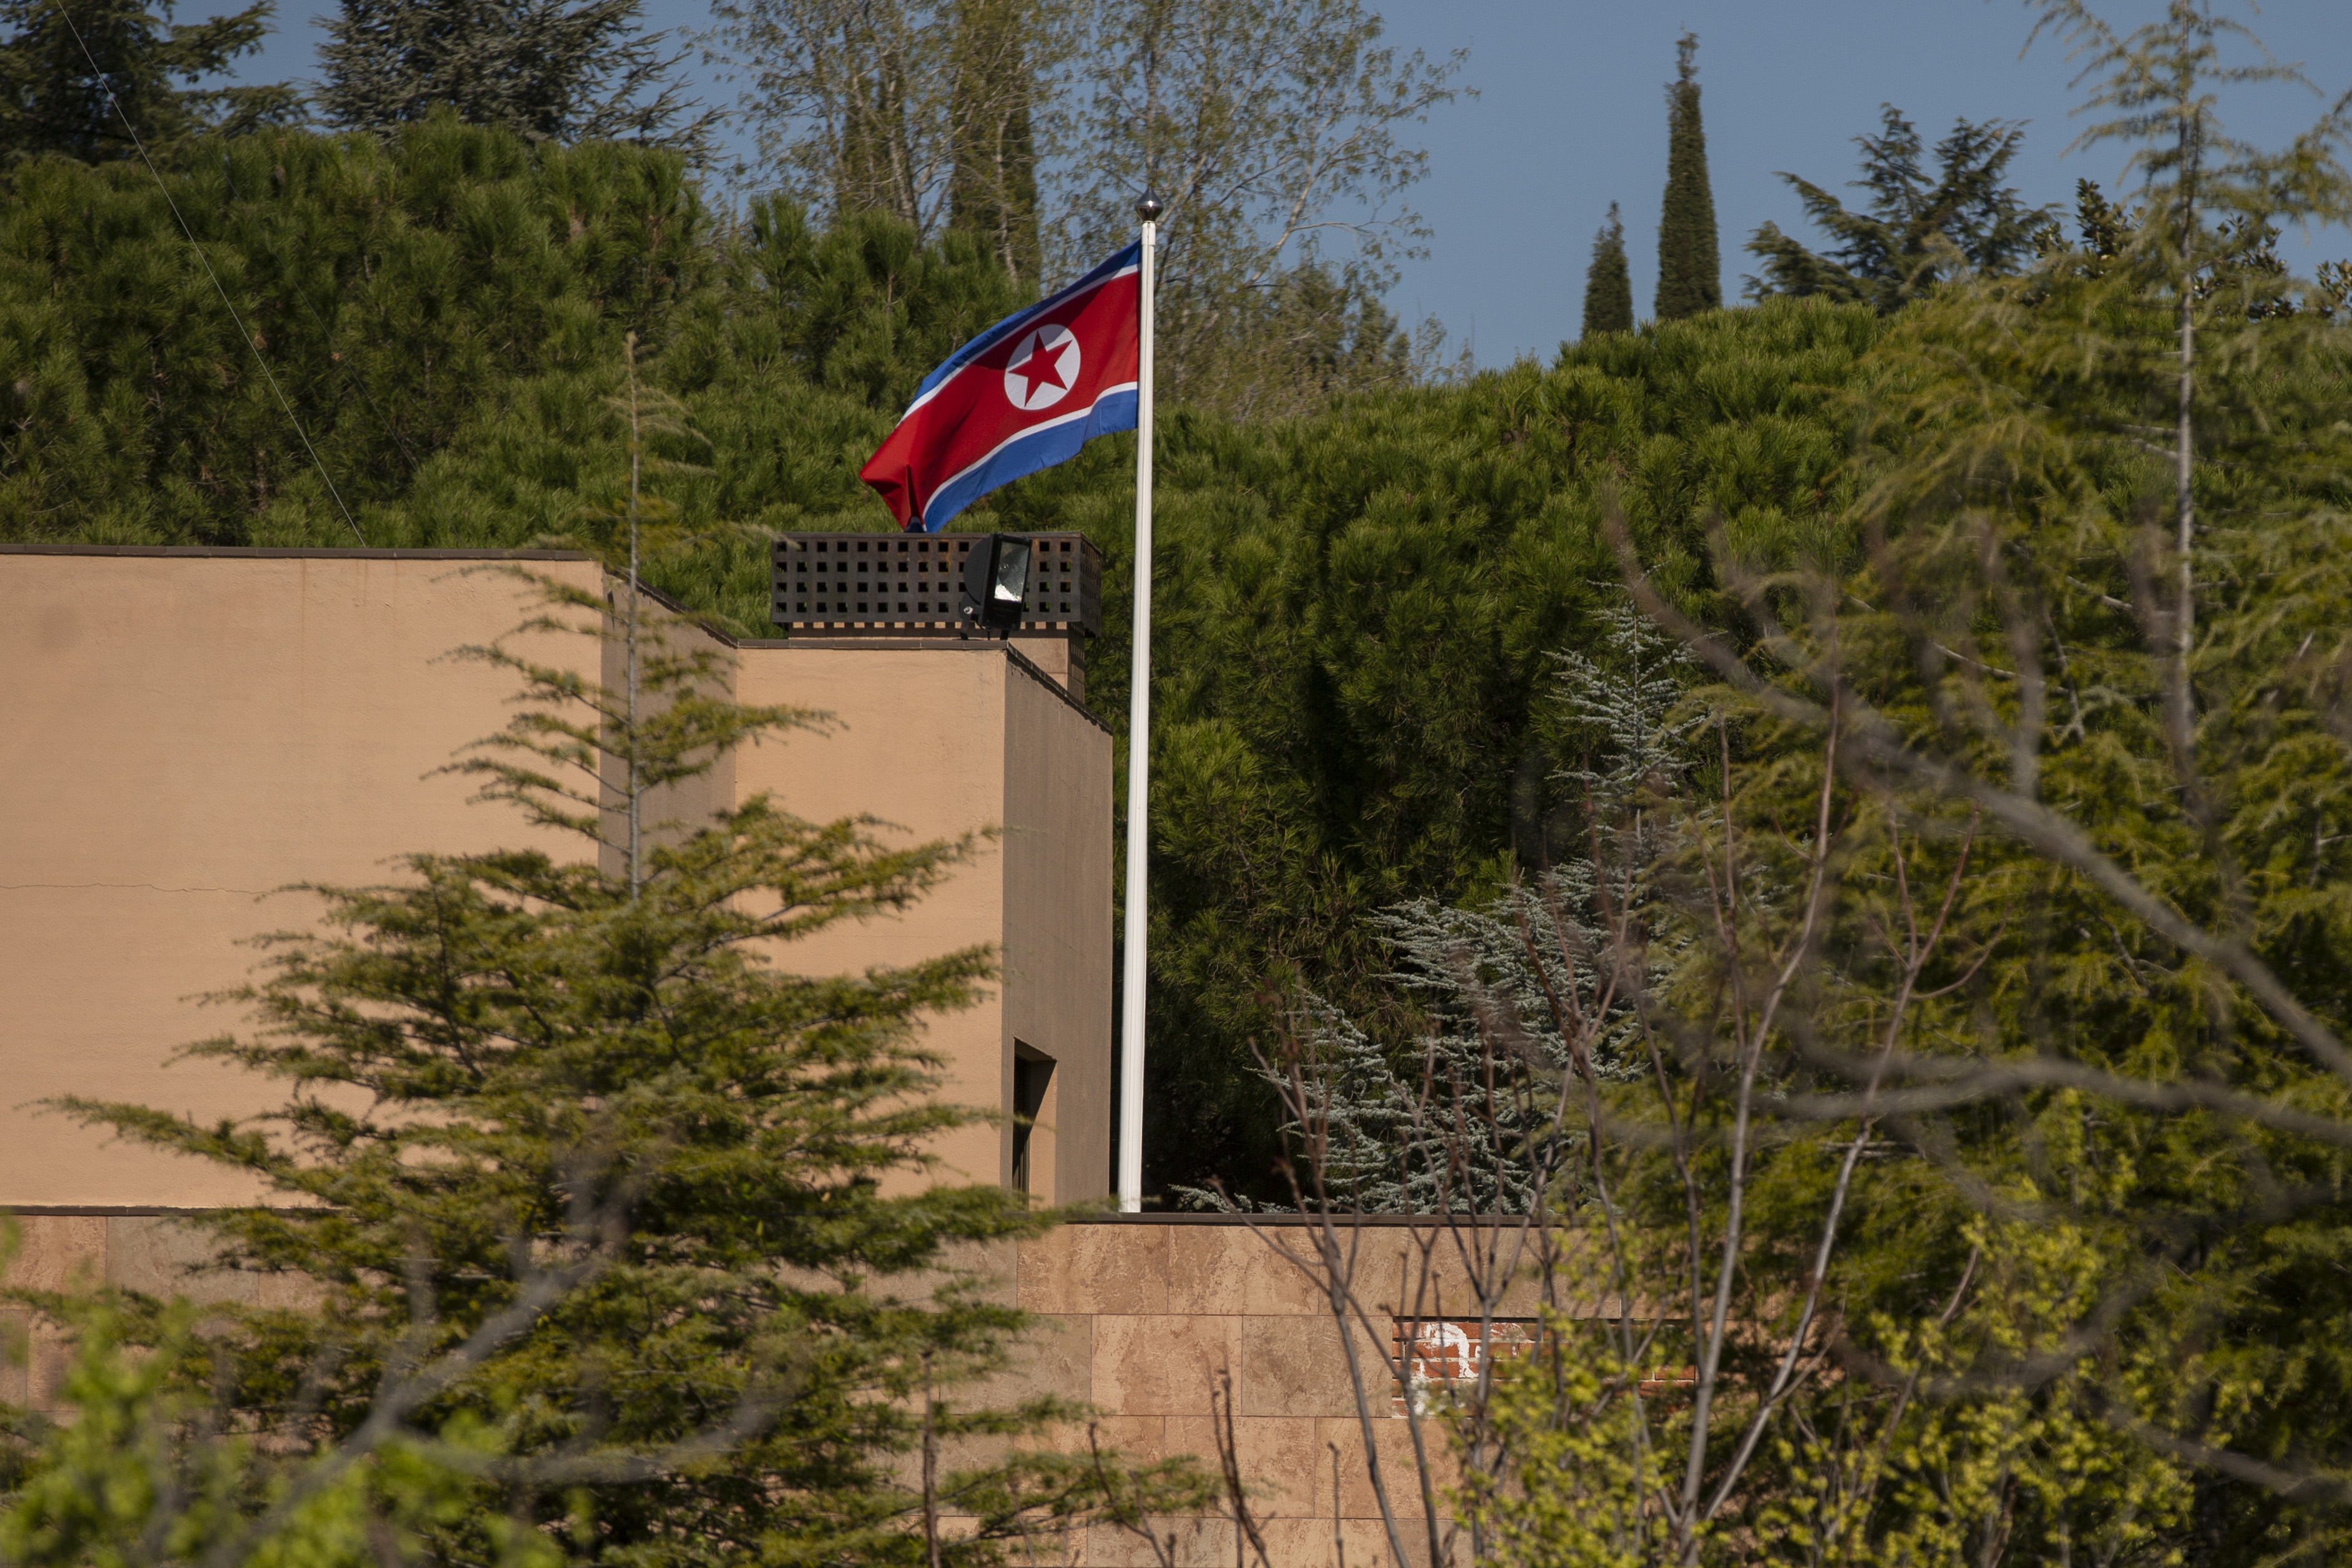 A North Korea flag waves in the wind at the North Korean Embassy in Madrid, Spain, on March 27, 2019.